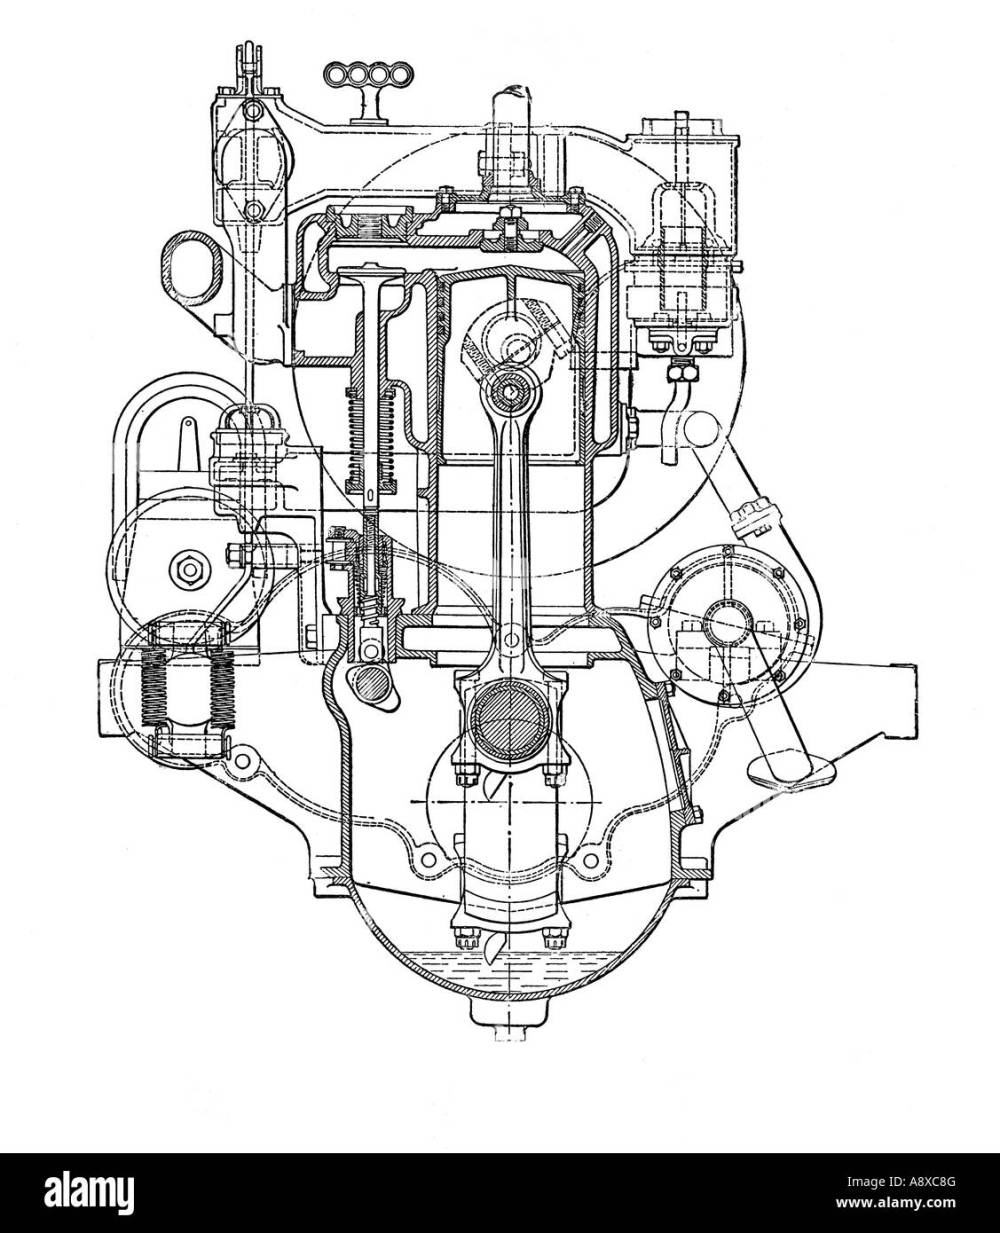 medium resolution of cross section diagram of siddeley four cylinder petrol engine